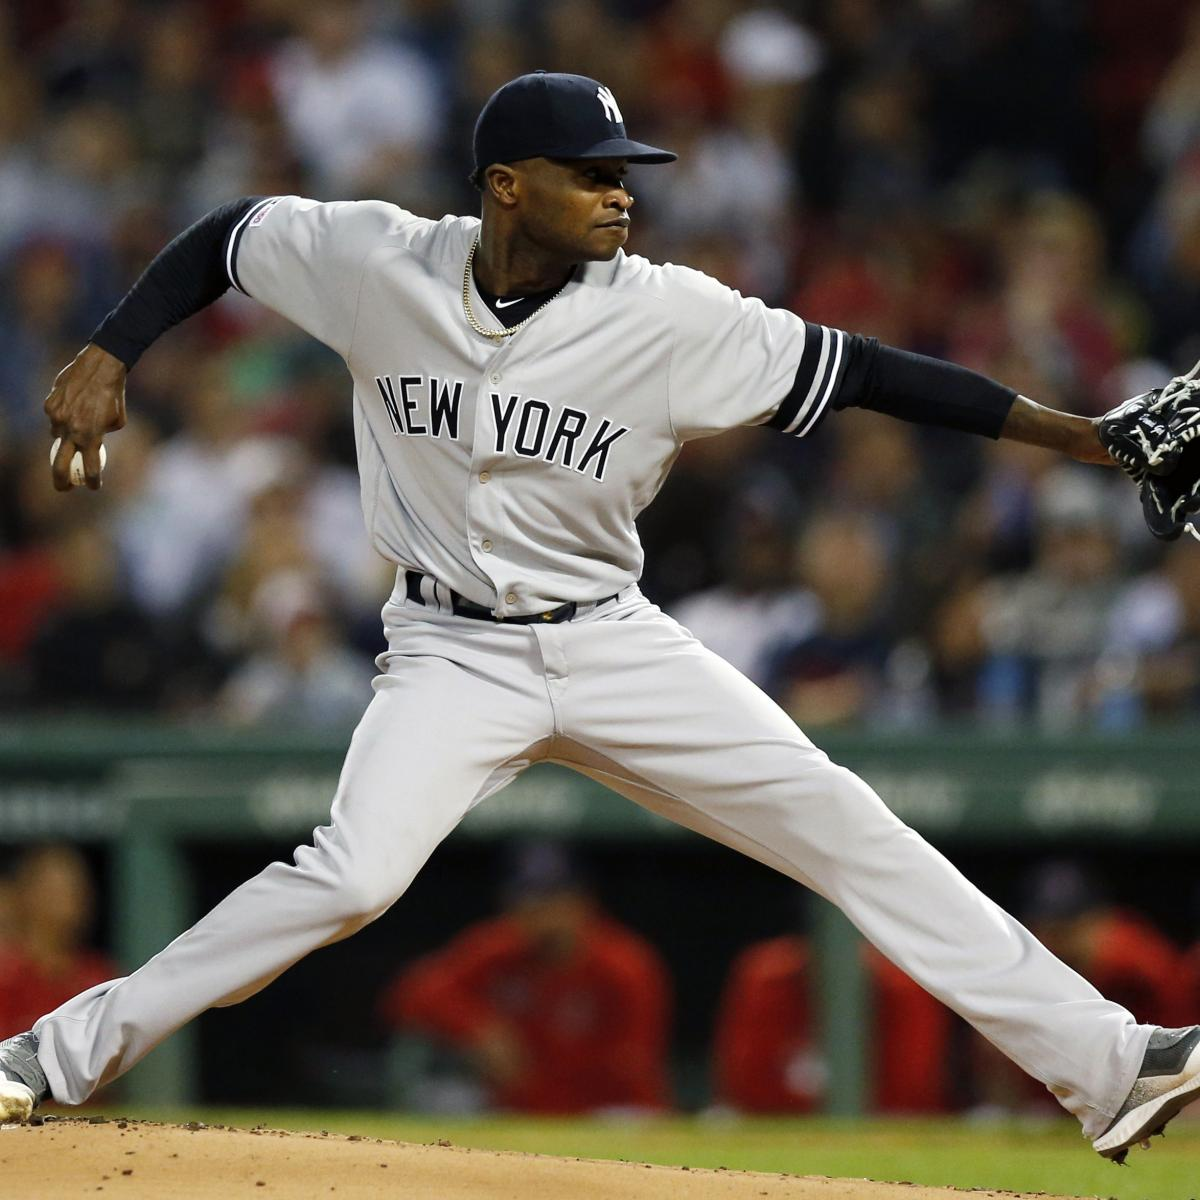 Yankees' Domingo German Says He Has 'Left Baseball' in Cryptic Instagram Post thumbnail